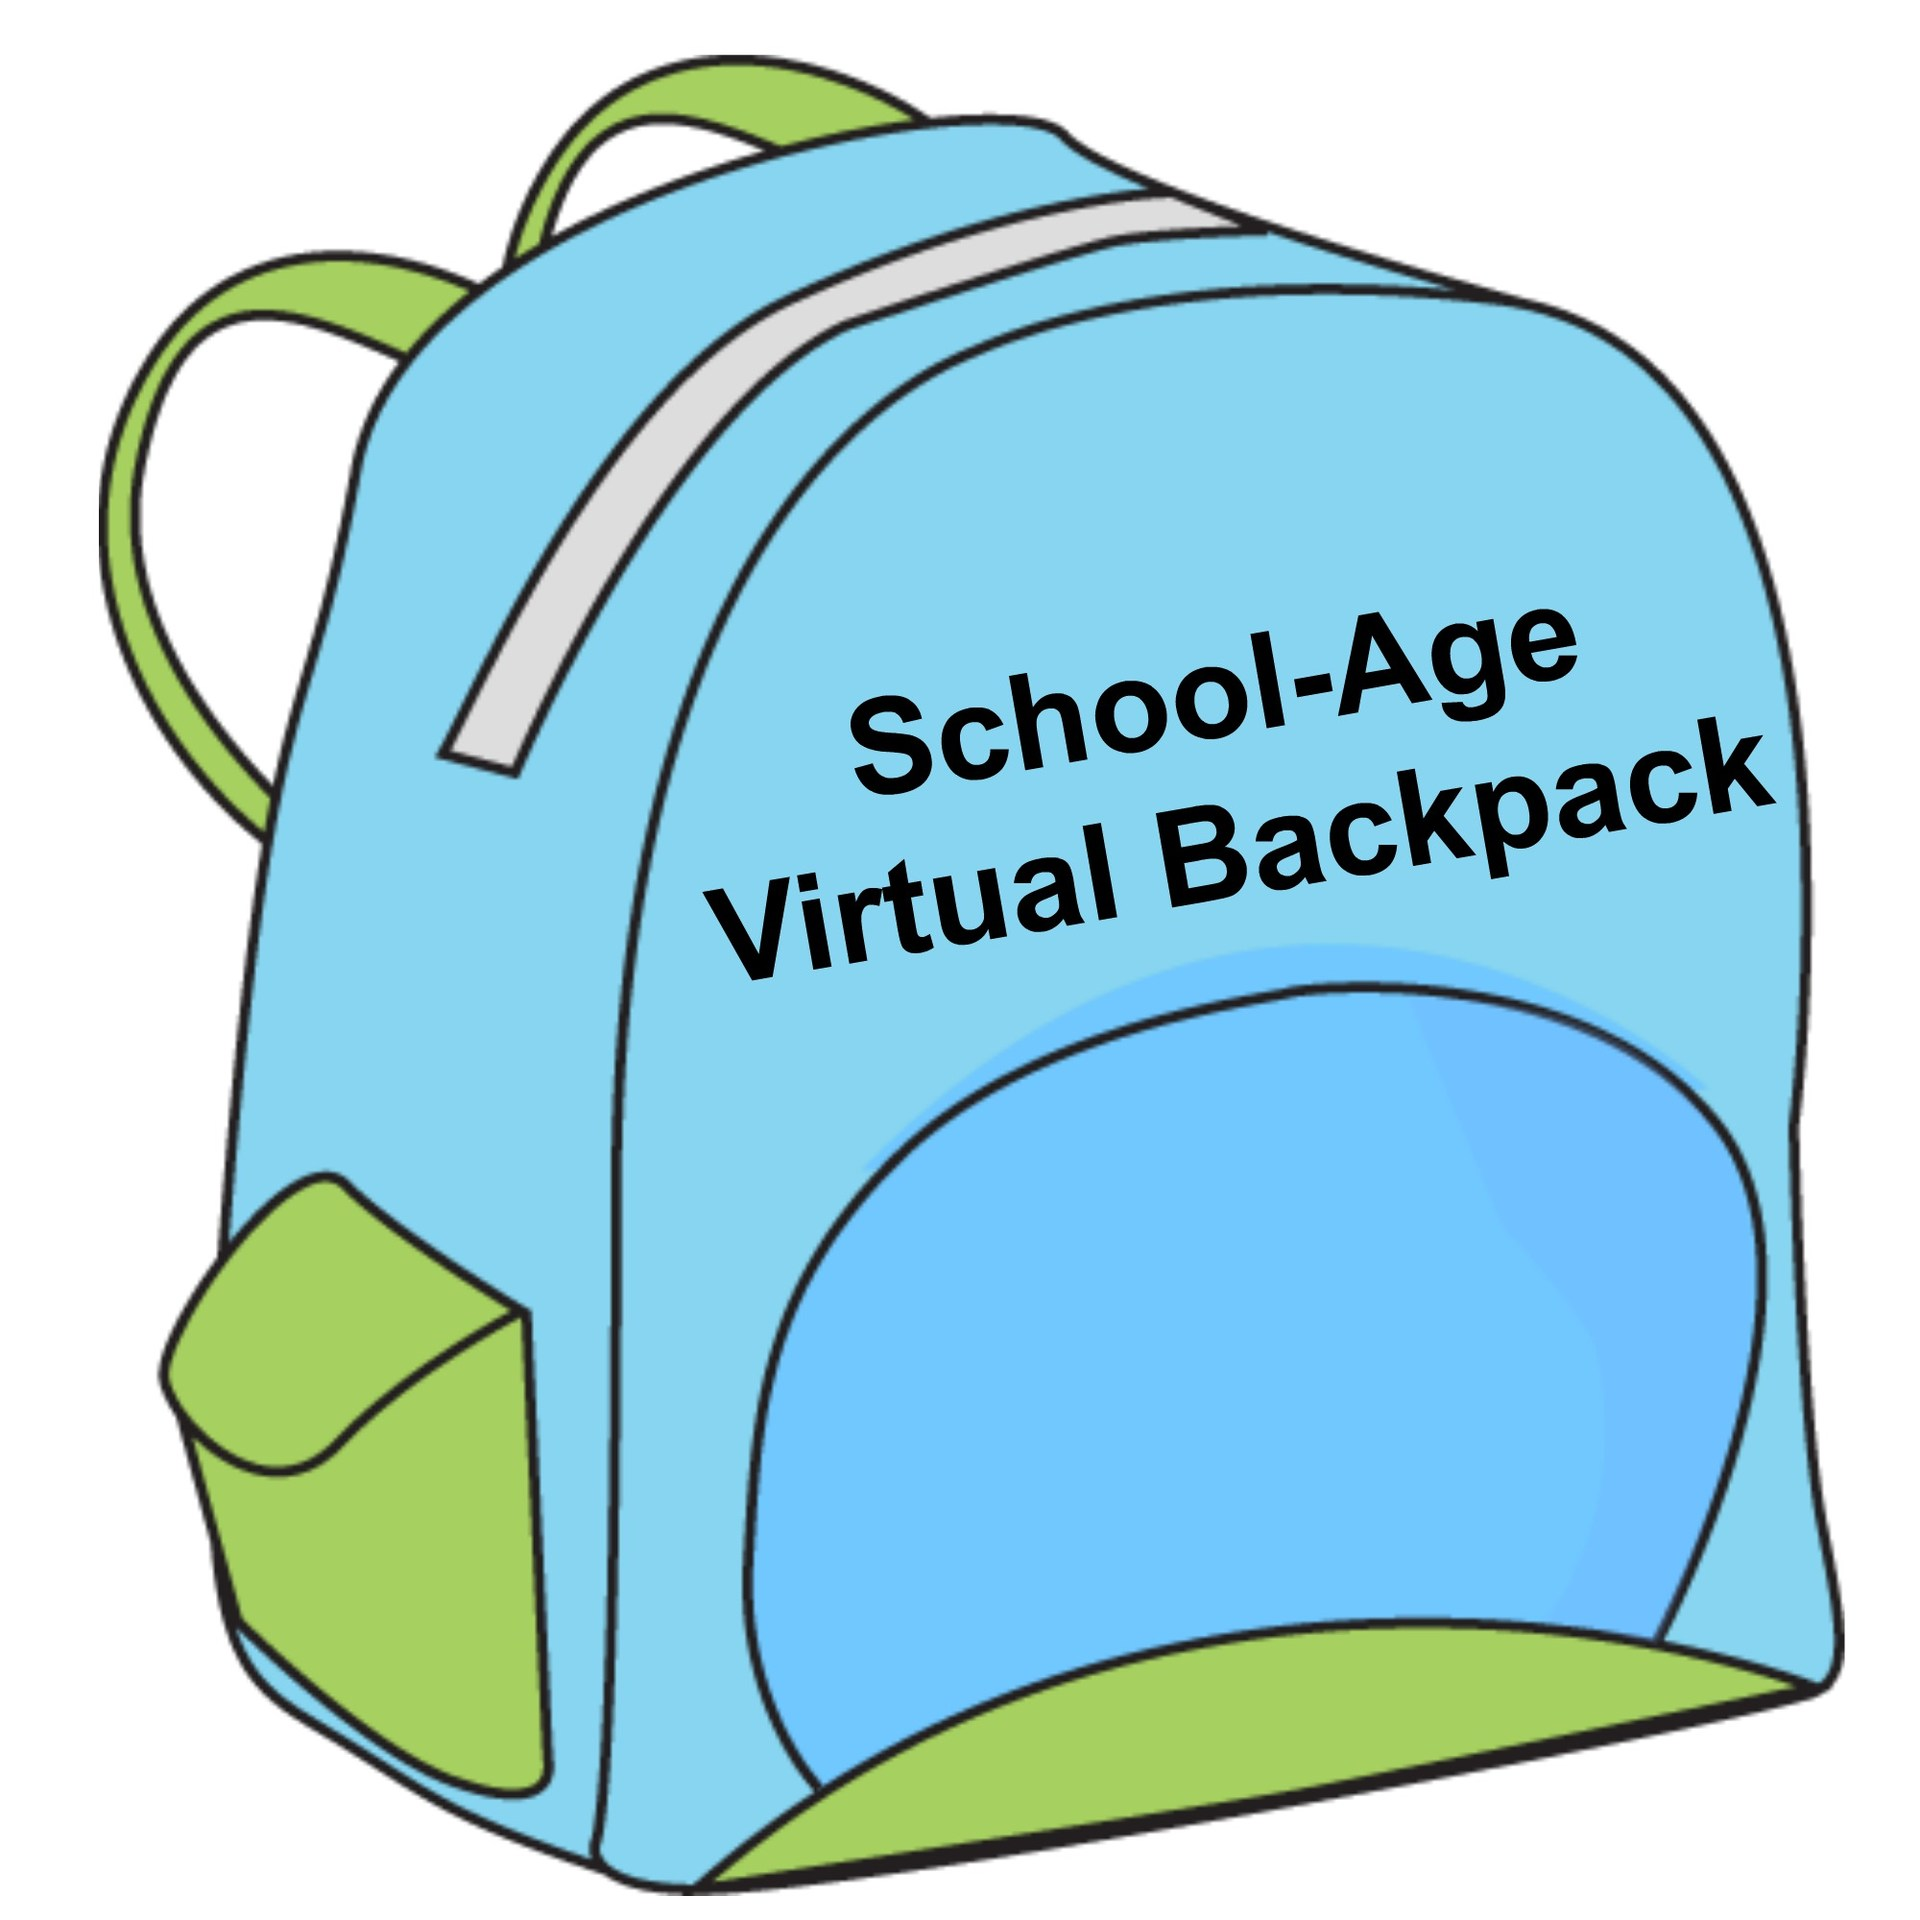 School-Age Virtual Backpack